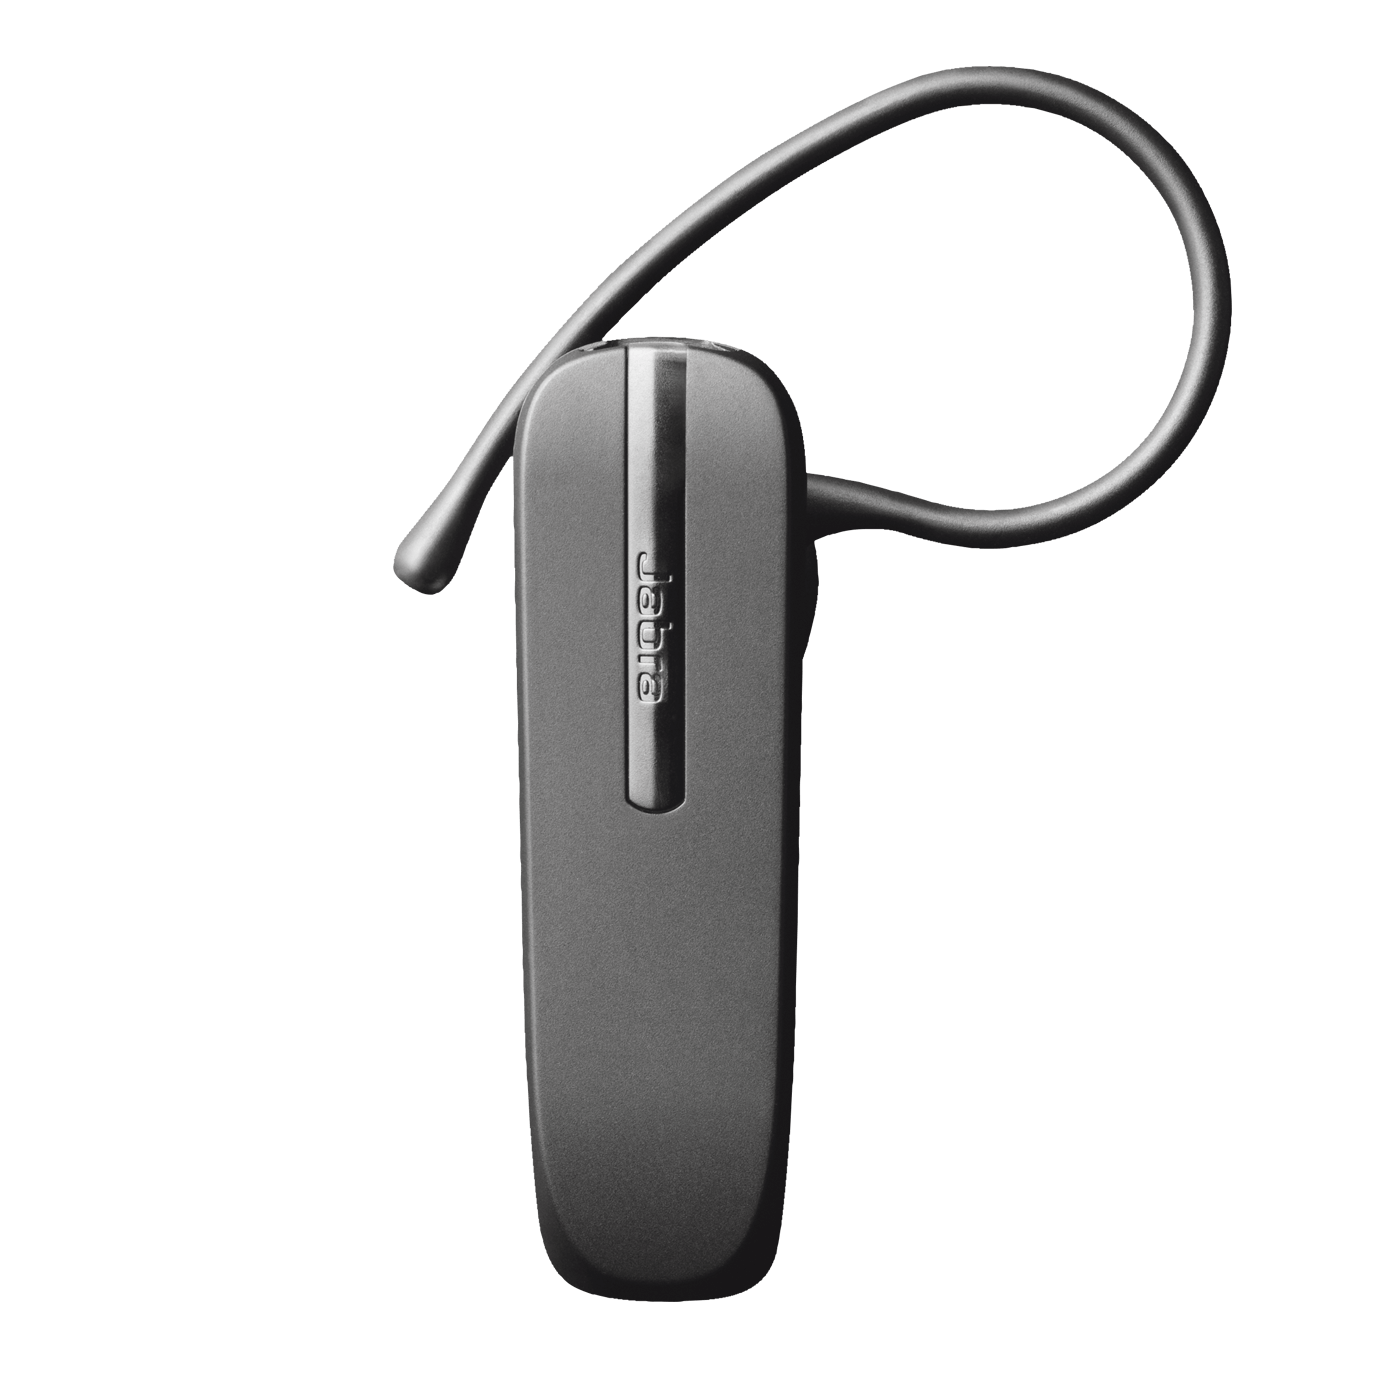 Bluetooth Headset For Mobile Devices